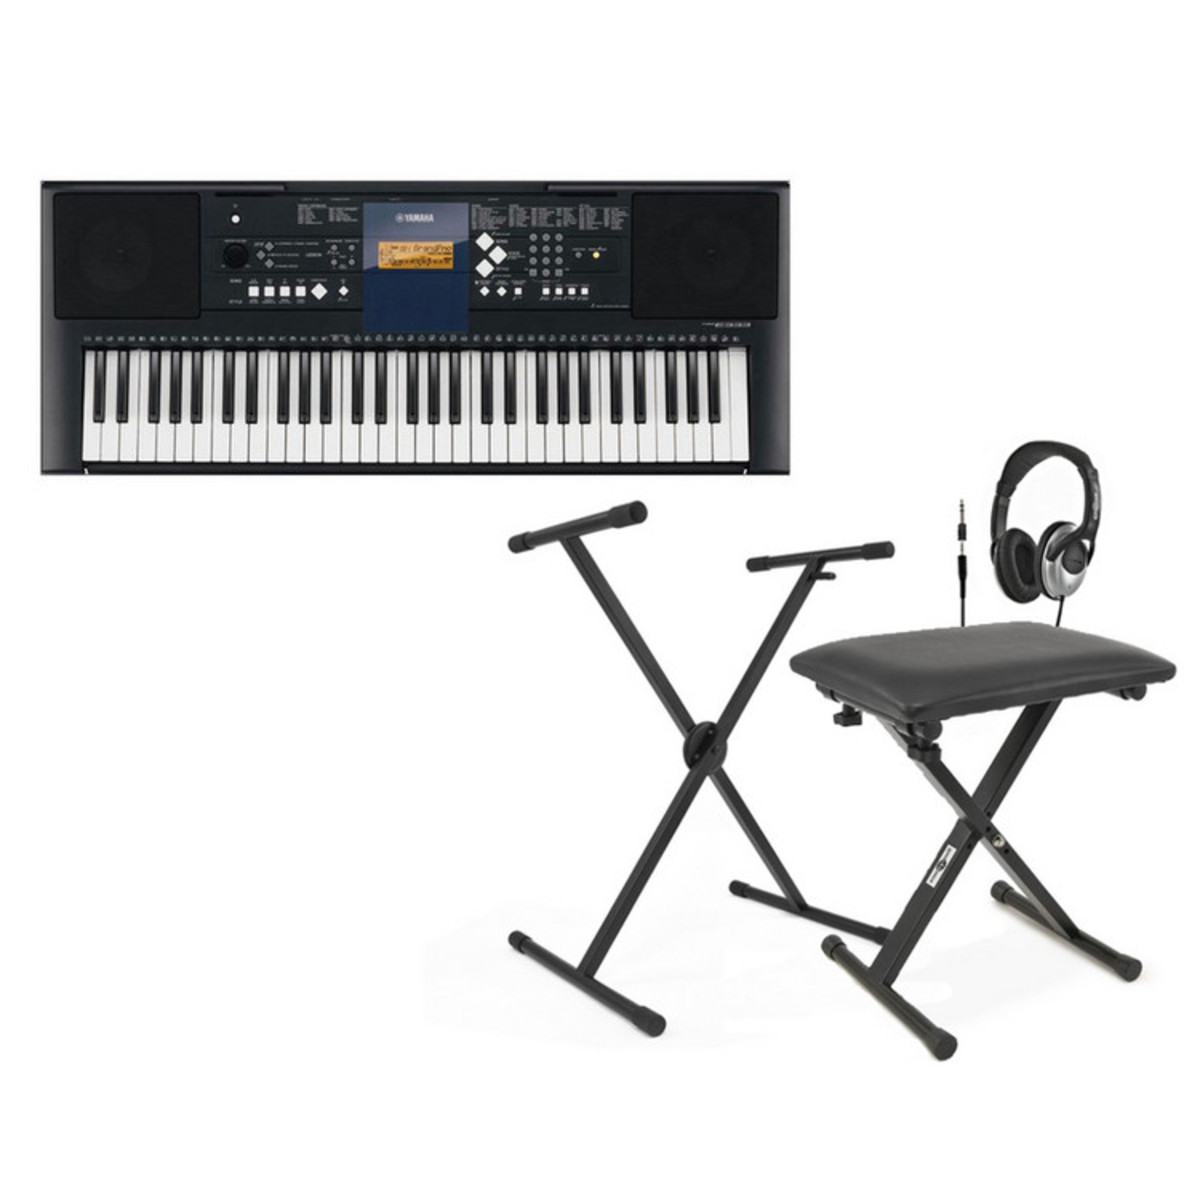 Disc yamaha psr e333 portable keyboard with stand bench at Keyboard stand and bench